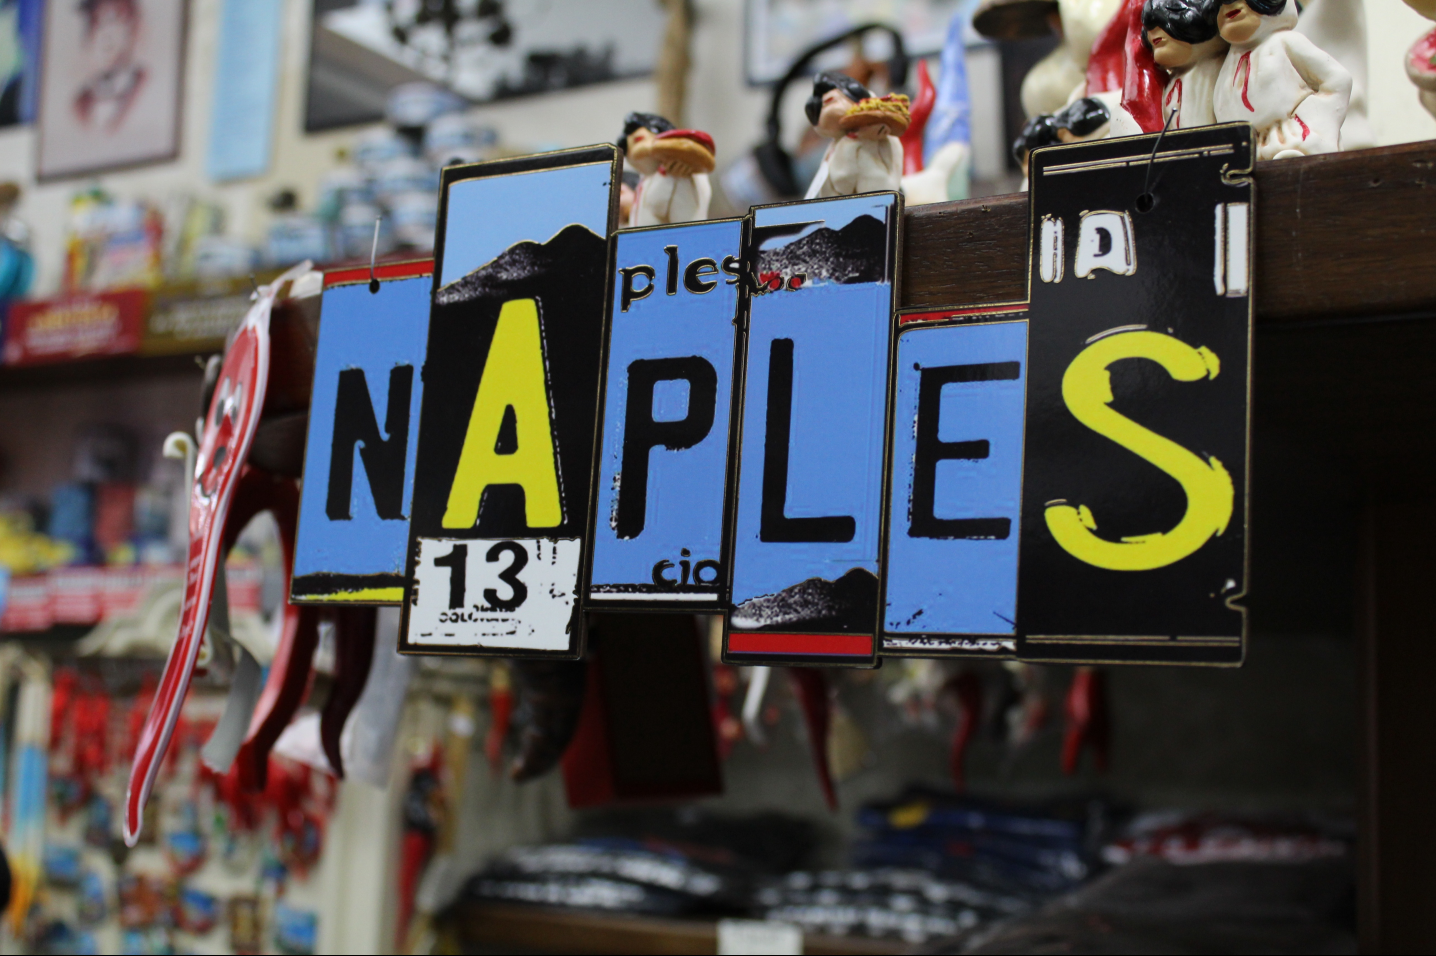 Naples - CC unsplash